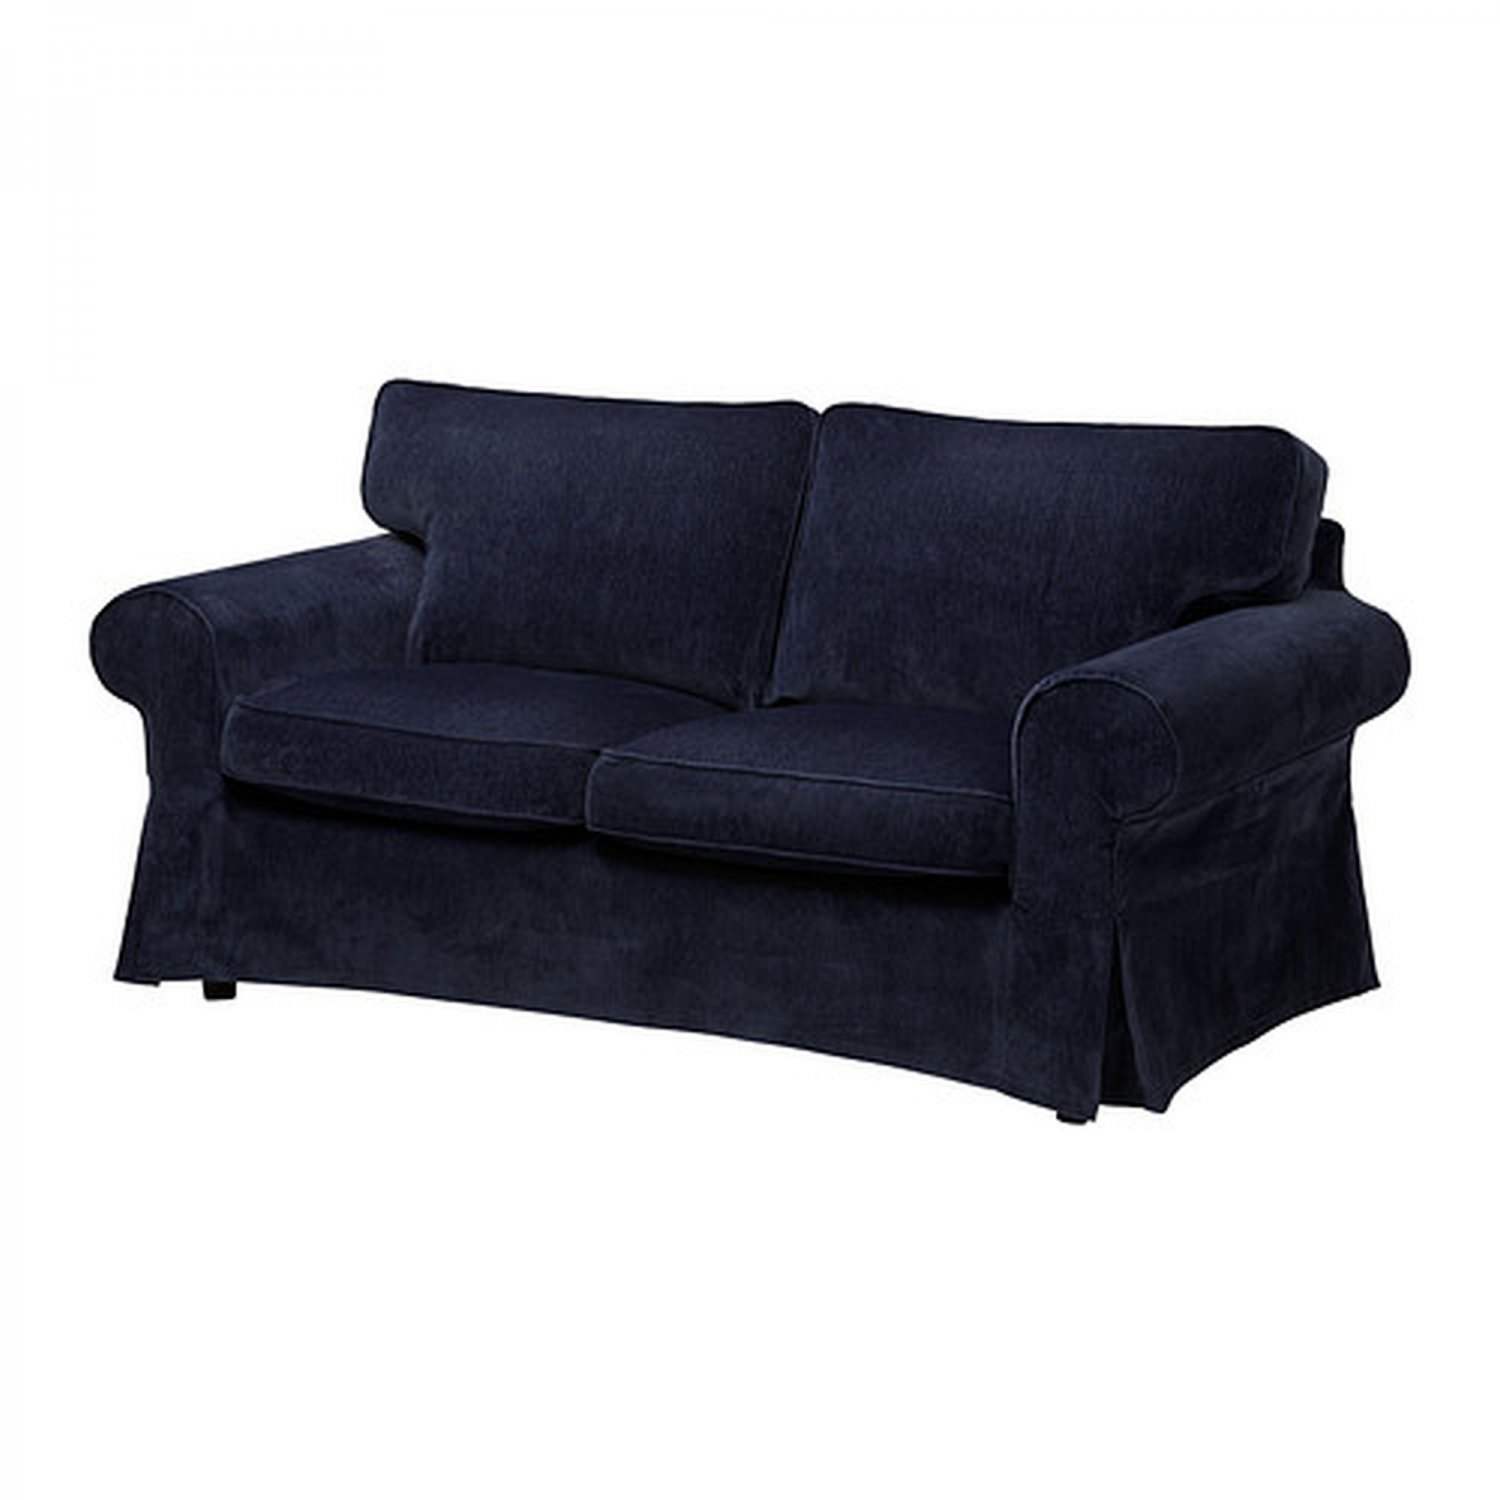 ikea ektorp 2 seat sofa slipcover loveseat cover vellinge dark blue. Black Bedroom Furniture Sets. Home Design Ideas